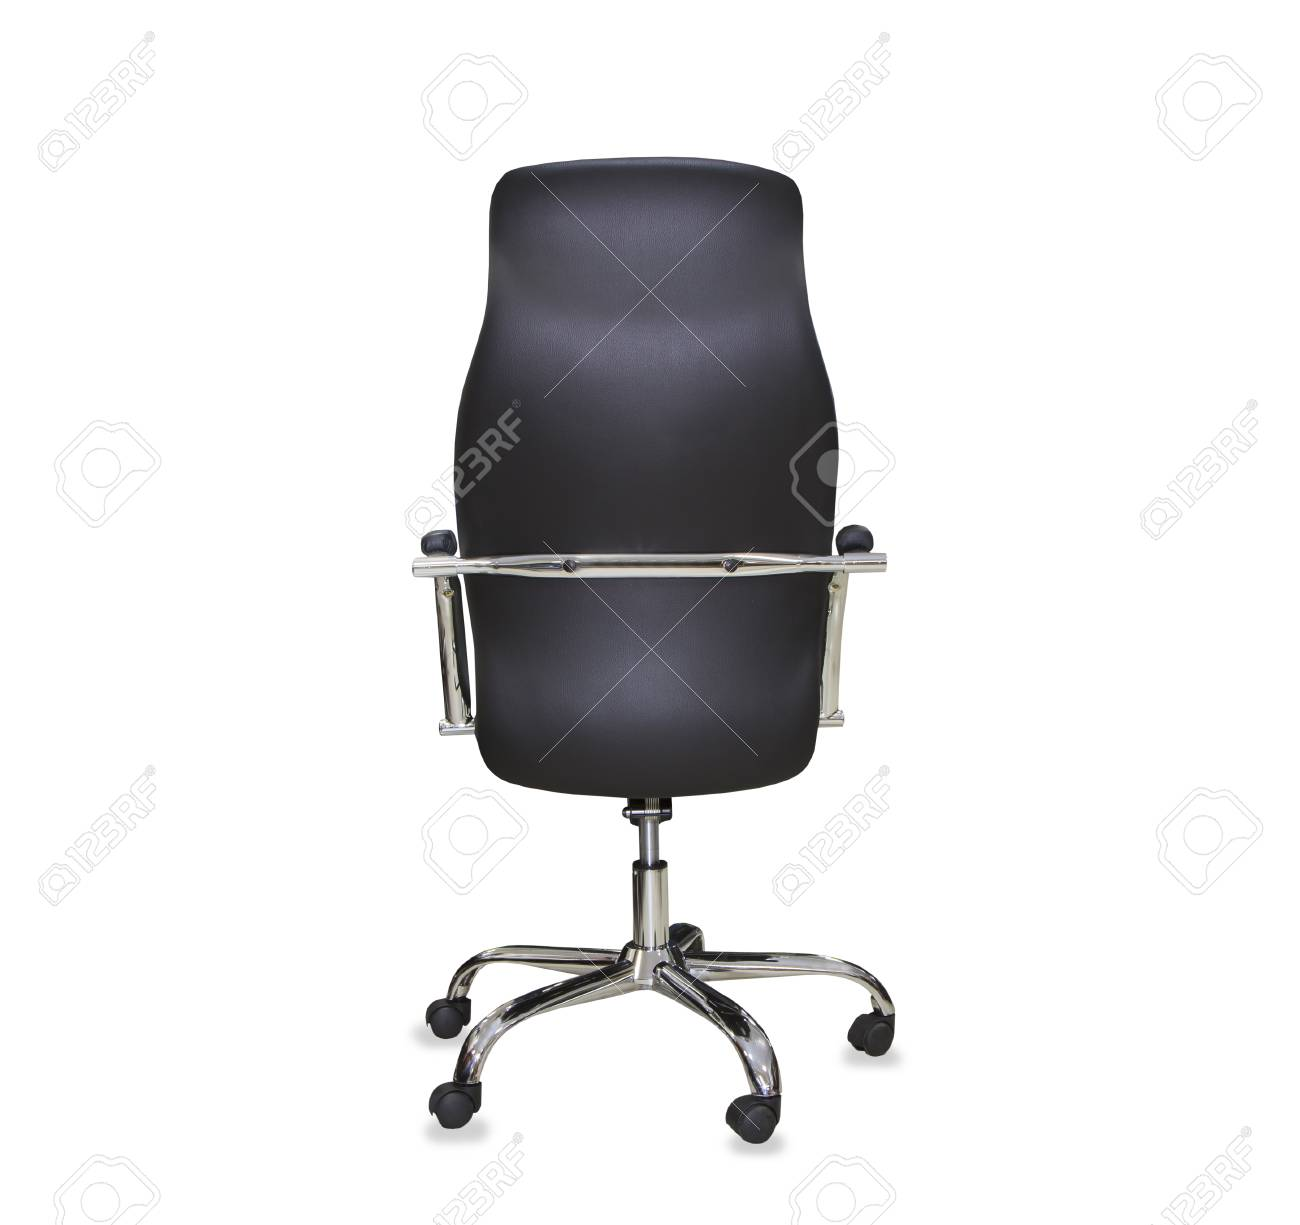 office chair back view. Back View Of Modern Office Chair From Black Leather. Isolated Stock Photo - 71173642